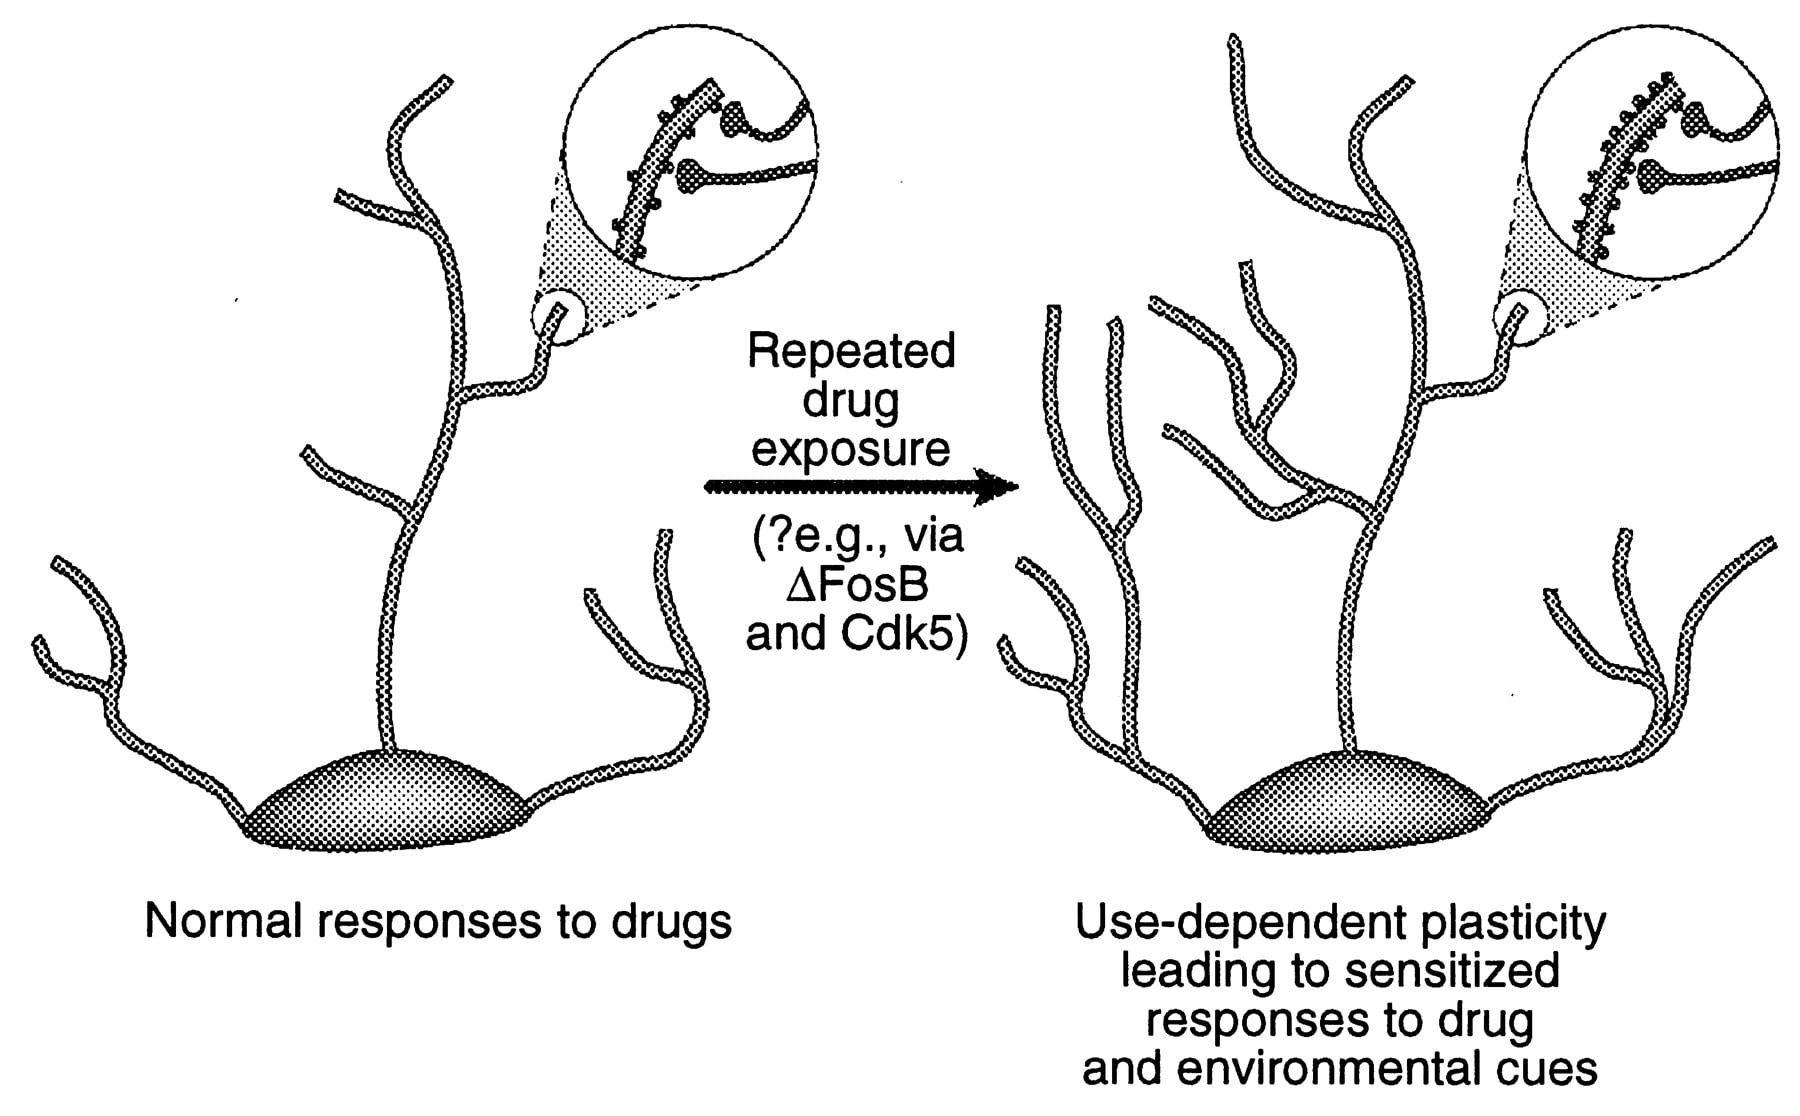 Drug use-dependent neuroplasticity